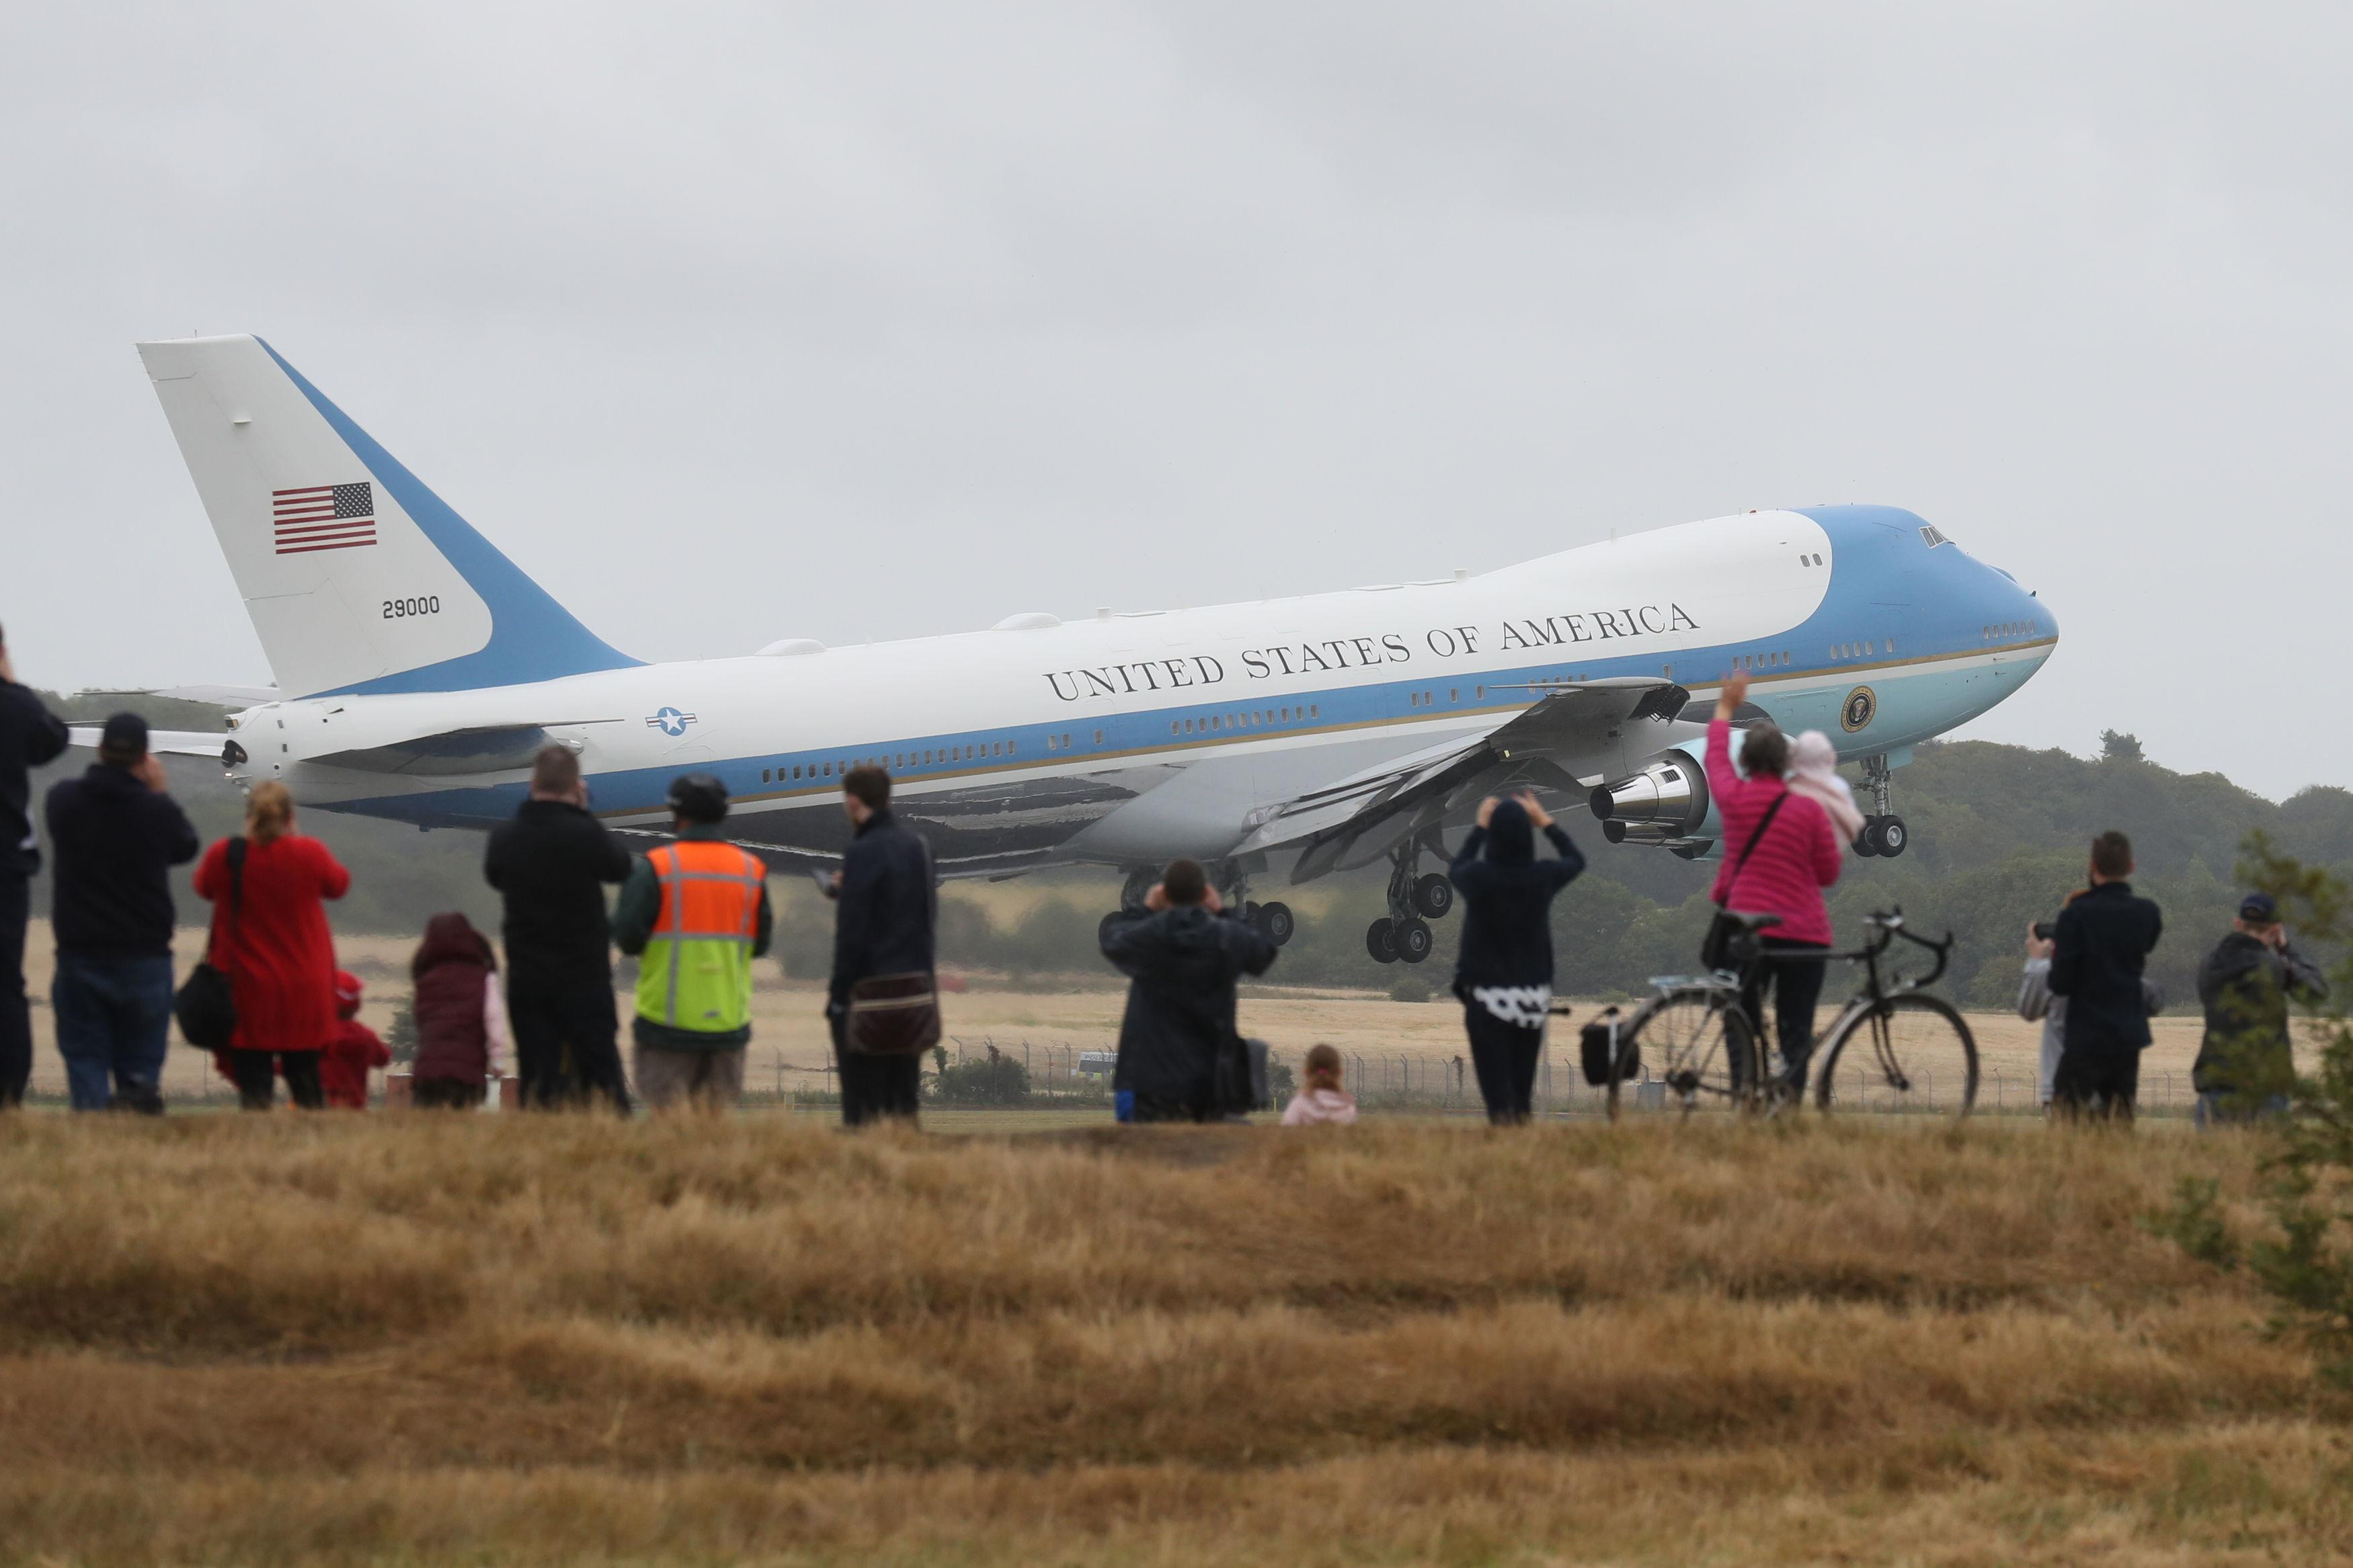 <p>People watch as Air Force One takes off from Prestwick Airport in Ayrshire, as President Donald Trump and his wife Melania leave the U.K. , after spending the weekend at the Trump Turnberry resort, bound for Finland where the president will hold talks with Russian leader Vladimir Putin in Helsinki, following meetings with Theresa May and the Queen in a whirlwind tour that took place amid mass protests against his policies across the U.K. (Photo: Andrew Milligan/PA Images via Getty Images) </p>